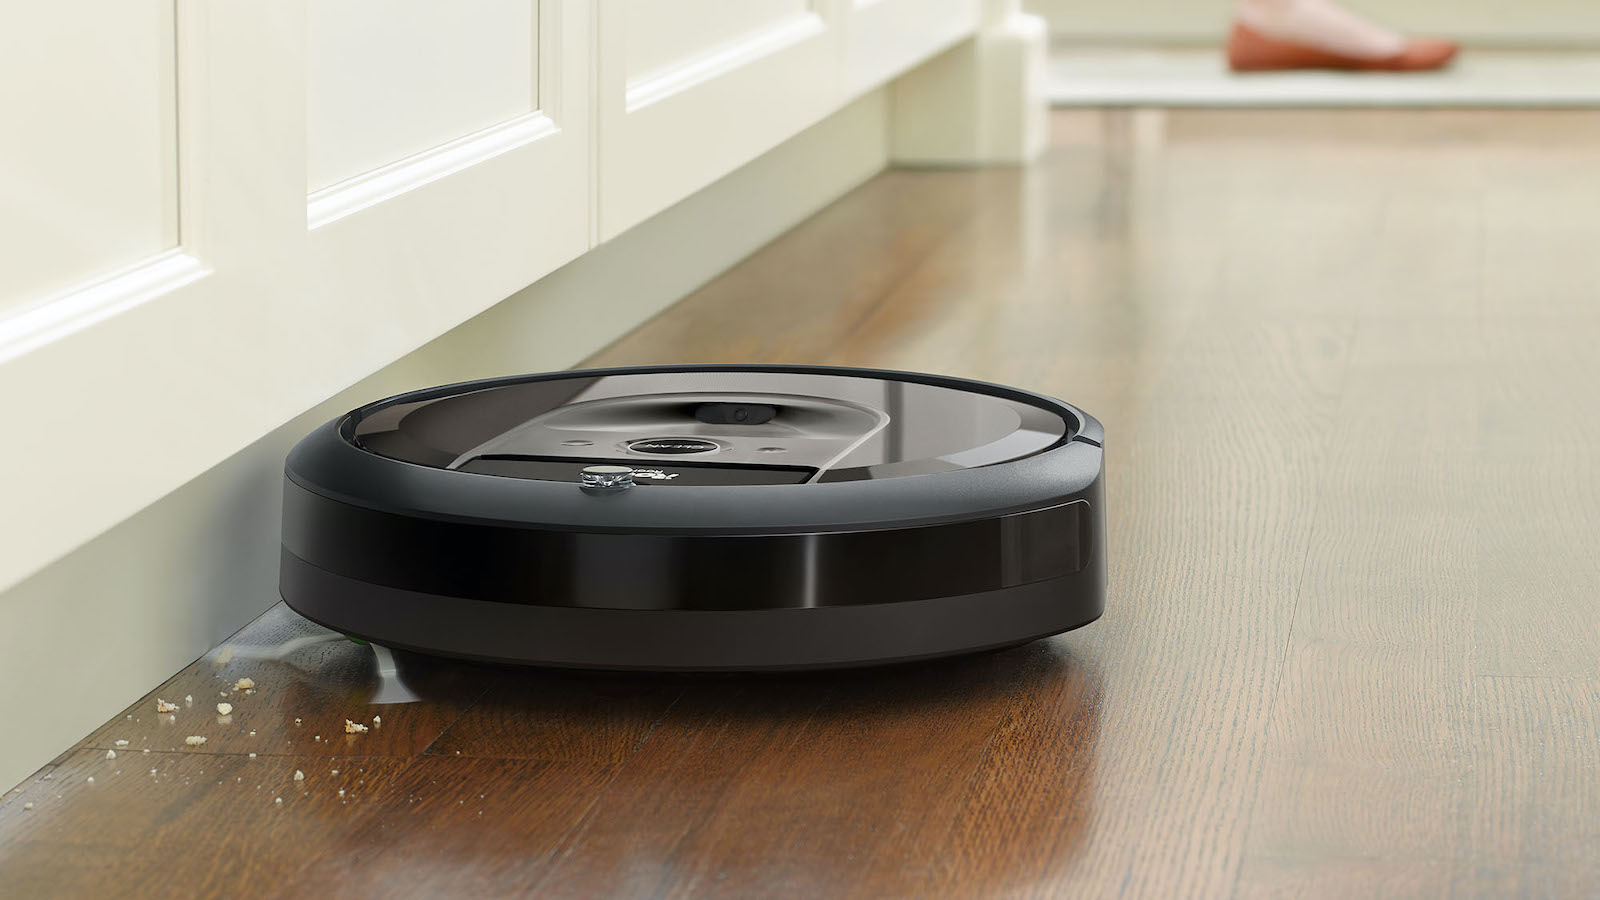 iRobot Roomba i7 smart Wi-Fi robot vacuum has a powerful premium 3-stage cleaning system